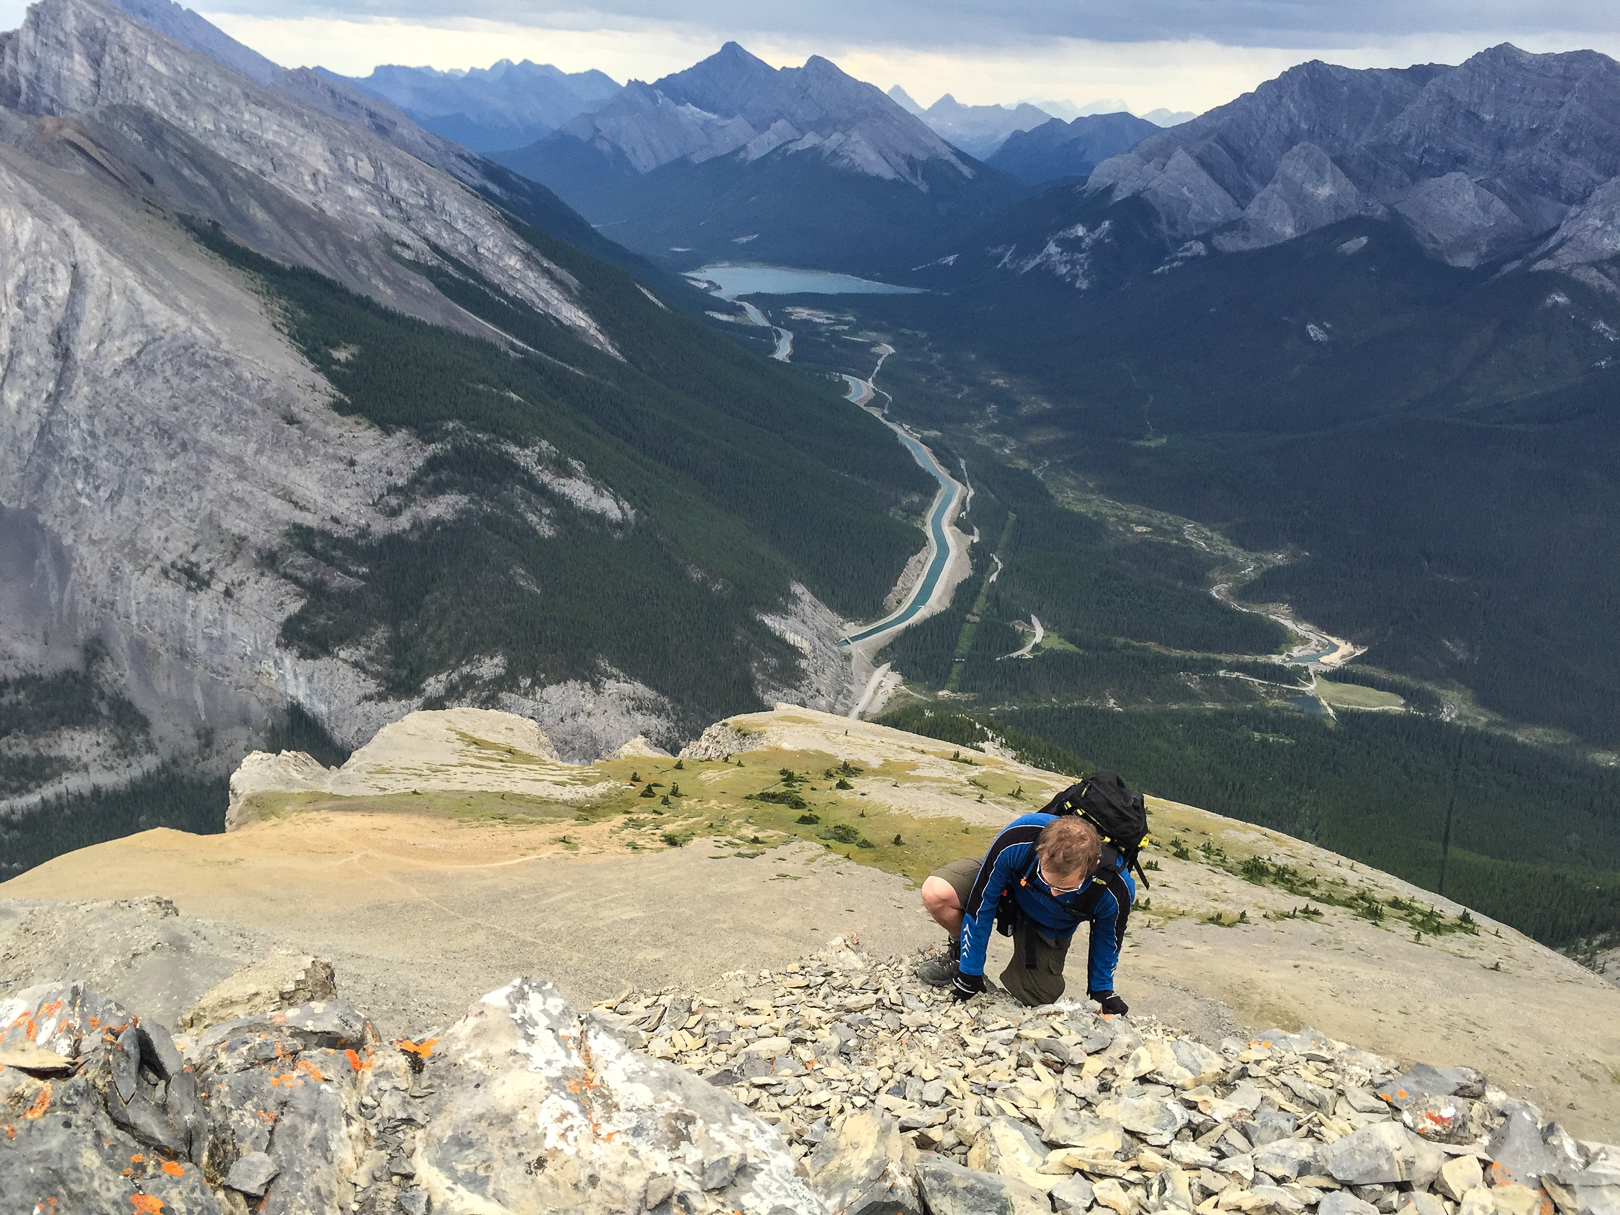 Stick to the exposed scramble on the right and you may find yourself using your hands as you climb to the summit